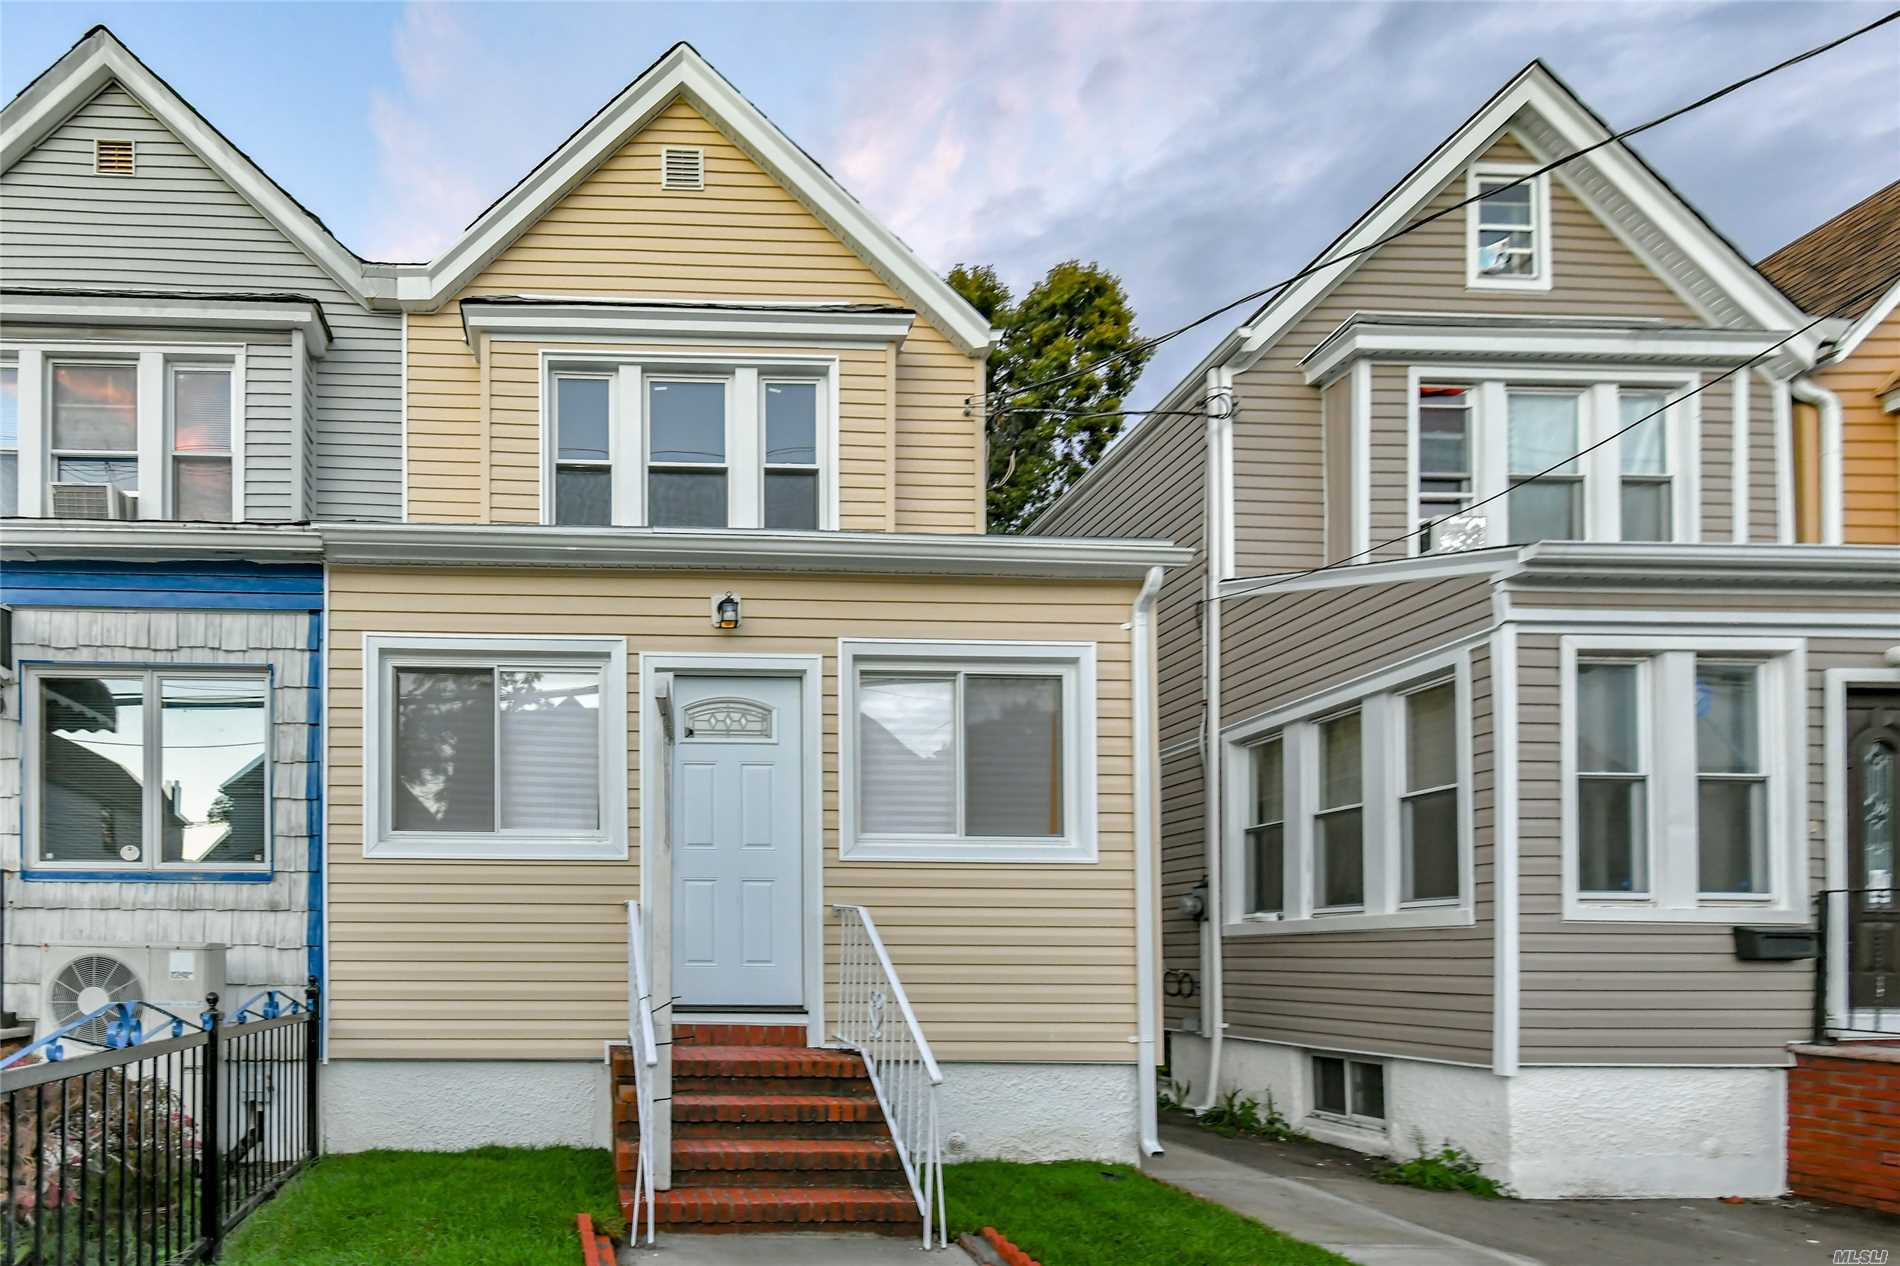 Totally renovated 1 fam detached colonial. Brand new kitchen + baths, new windows, siding sheet rock, electric & plumbing. New boiler & hot water heater. Hardwood floors. 1 car garage & finished basement & much more.